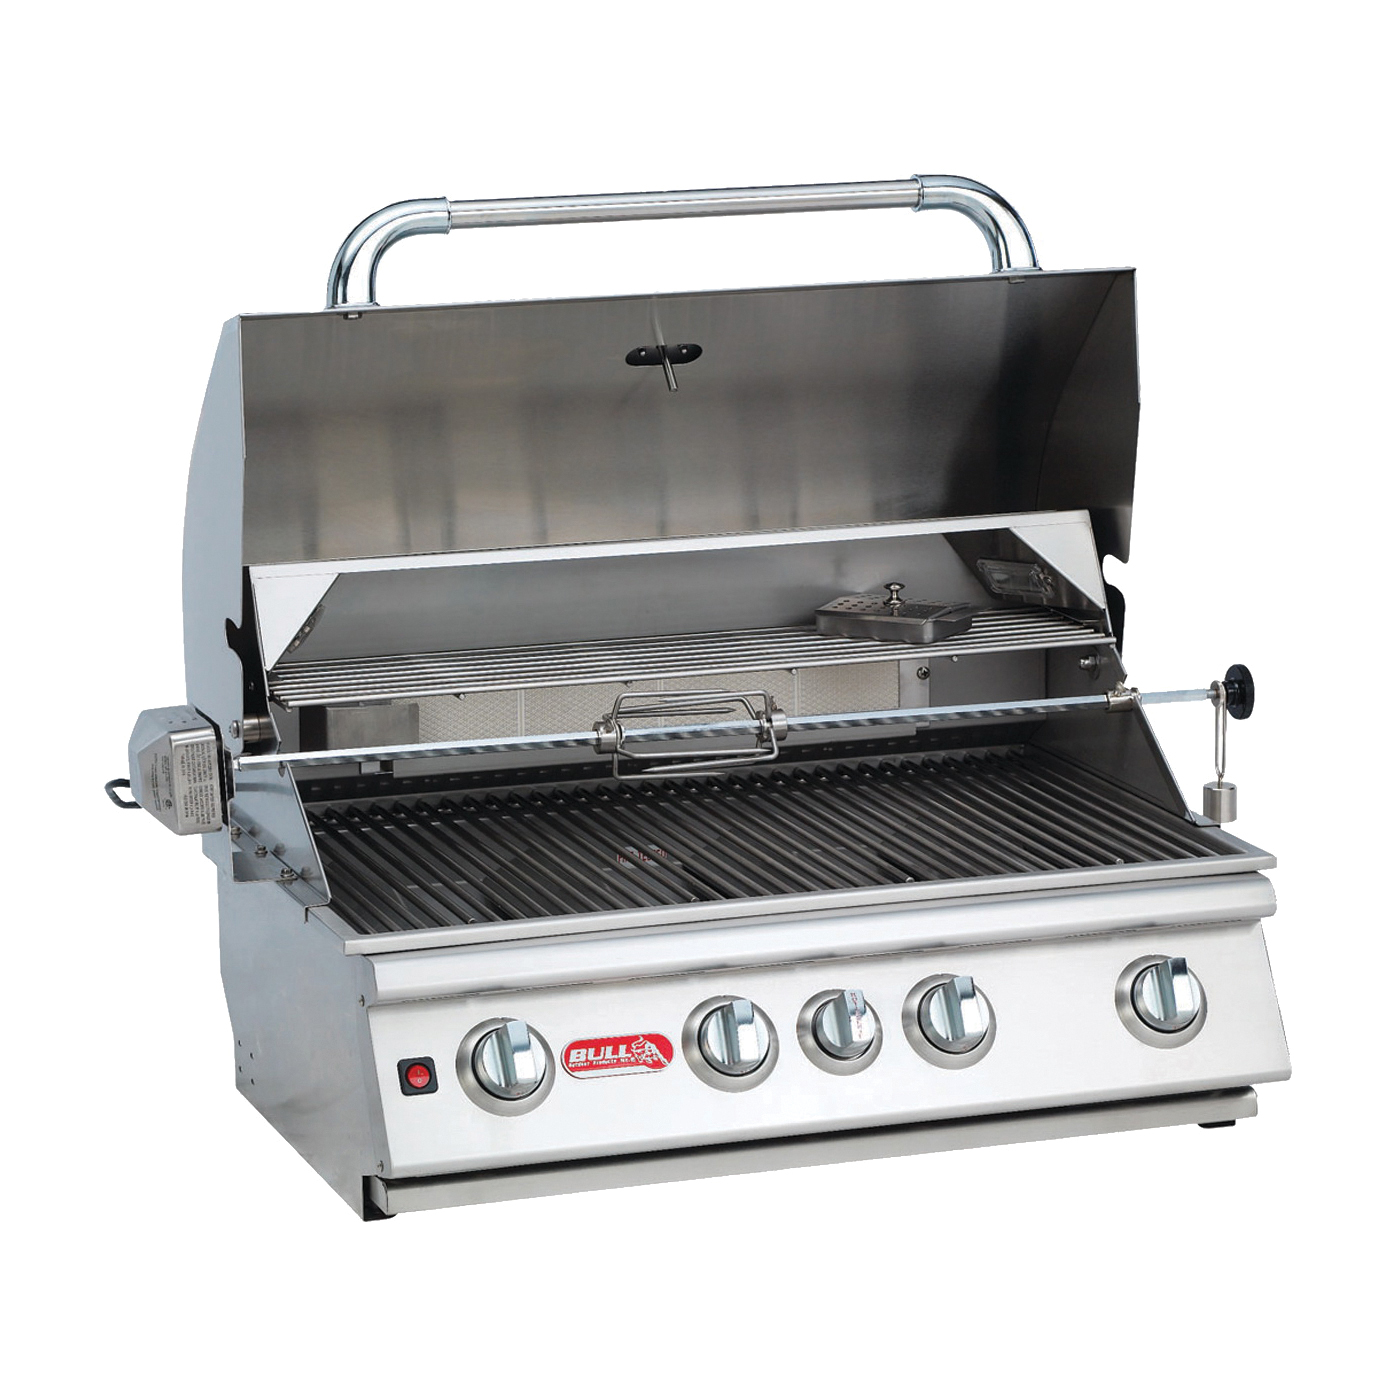 Picture of BULL Angus 47629 Gas Grill Head, 75000 Btu BTU, Natural Gas, 4 -Burner, 210 sq-in Secondary Cooking Surface